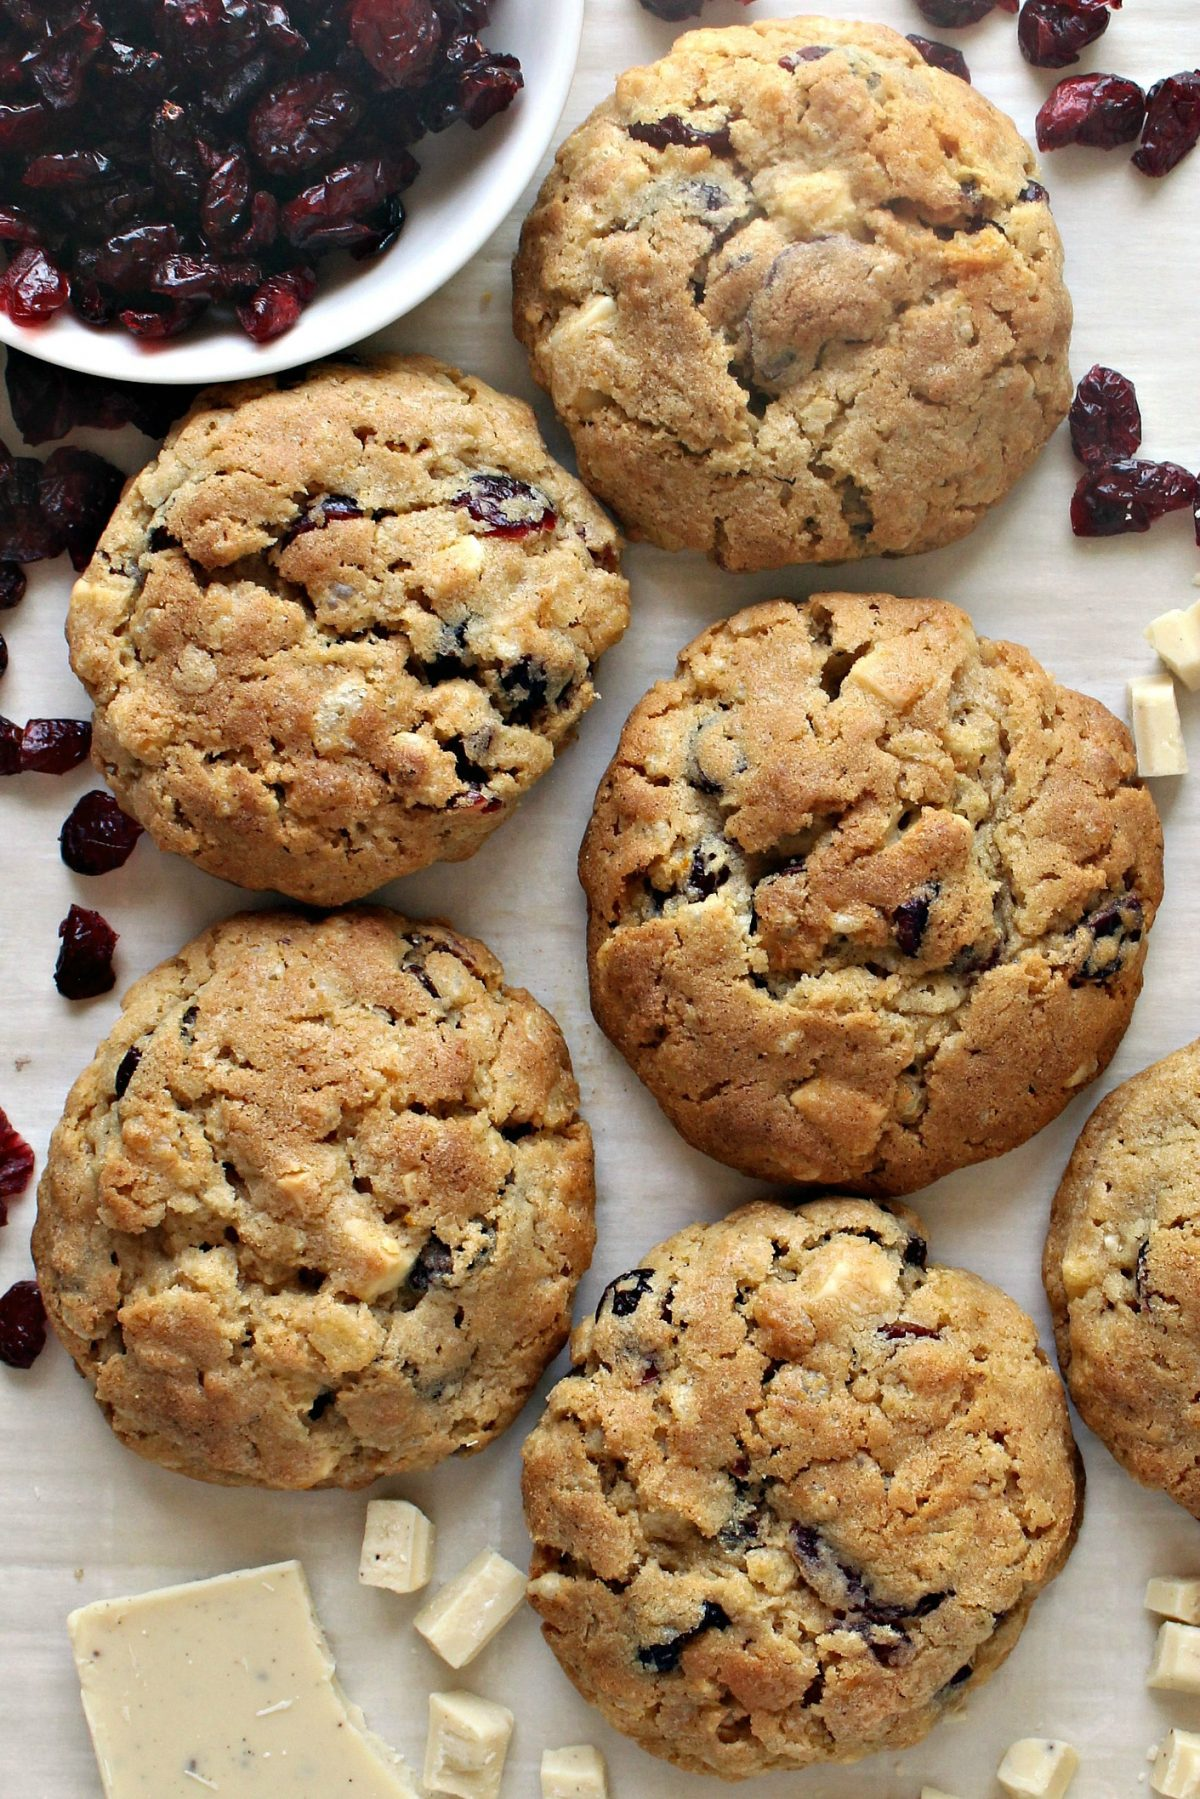 Cranberry White Chocolate Cookies, large and golden brown, with chopped white chocolate and  dried cranberries.